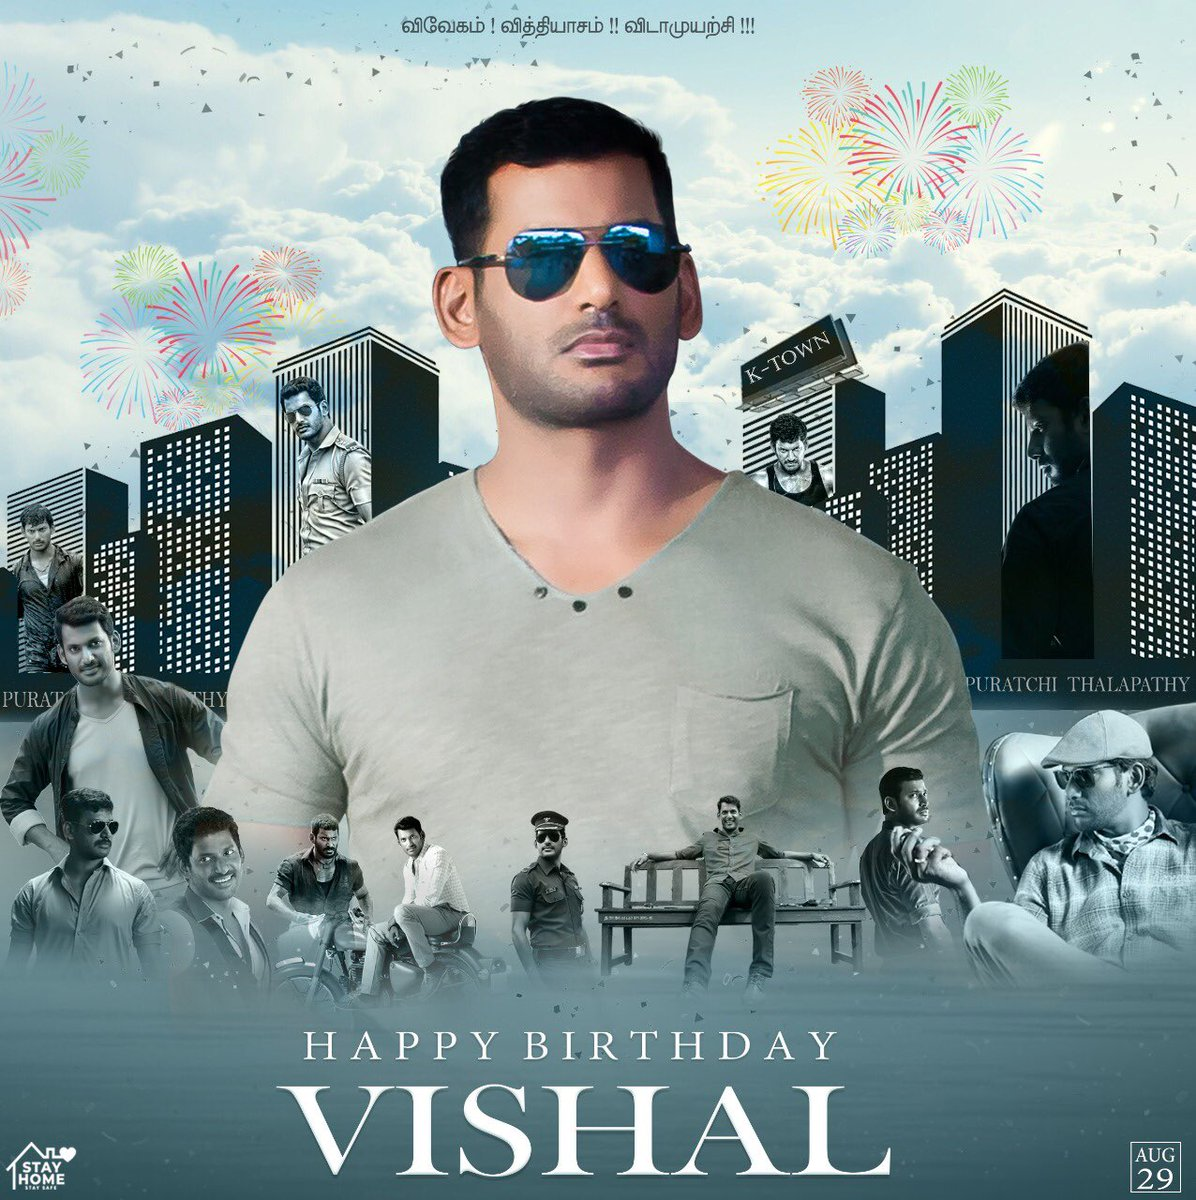 I'm happy to release the CDP for my dear @VishalKOfficial's Birthday!  Happy birthday #Vishal!   #HBDVishal #HappyBirthdayVishal  #VishalBdayCDP   @HariKr_official @VffVishal @johnsoncinepro @saravanaspb @VISHAL_SFC @baraju_SuperHit https://t.co/joE9PBYhXH